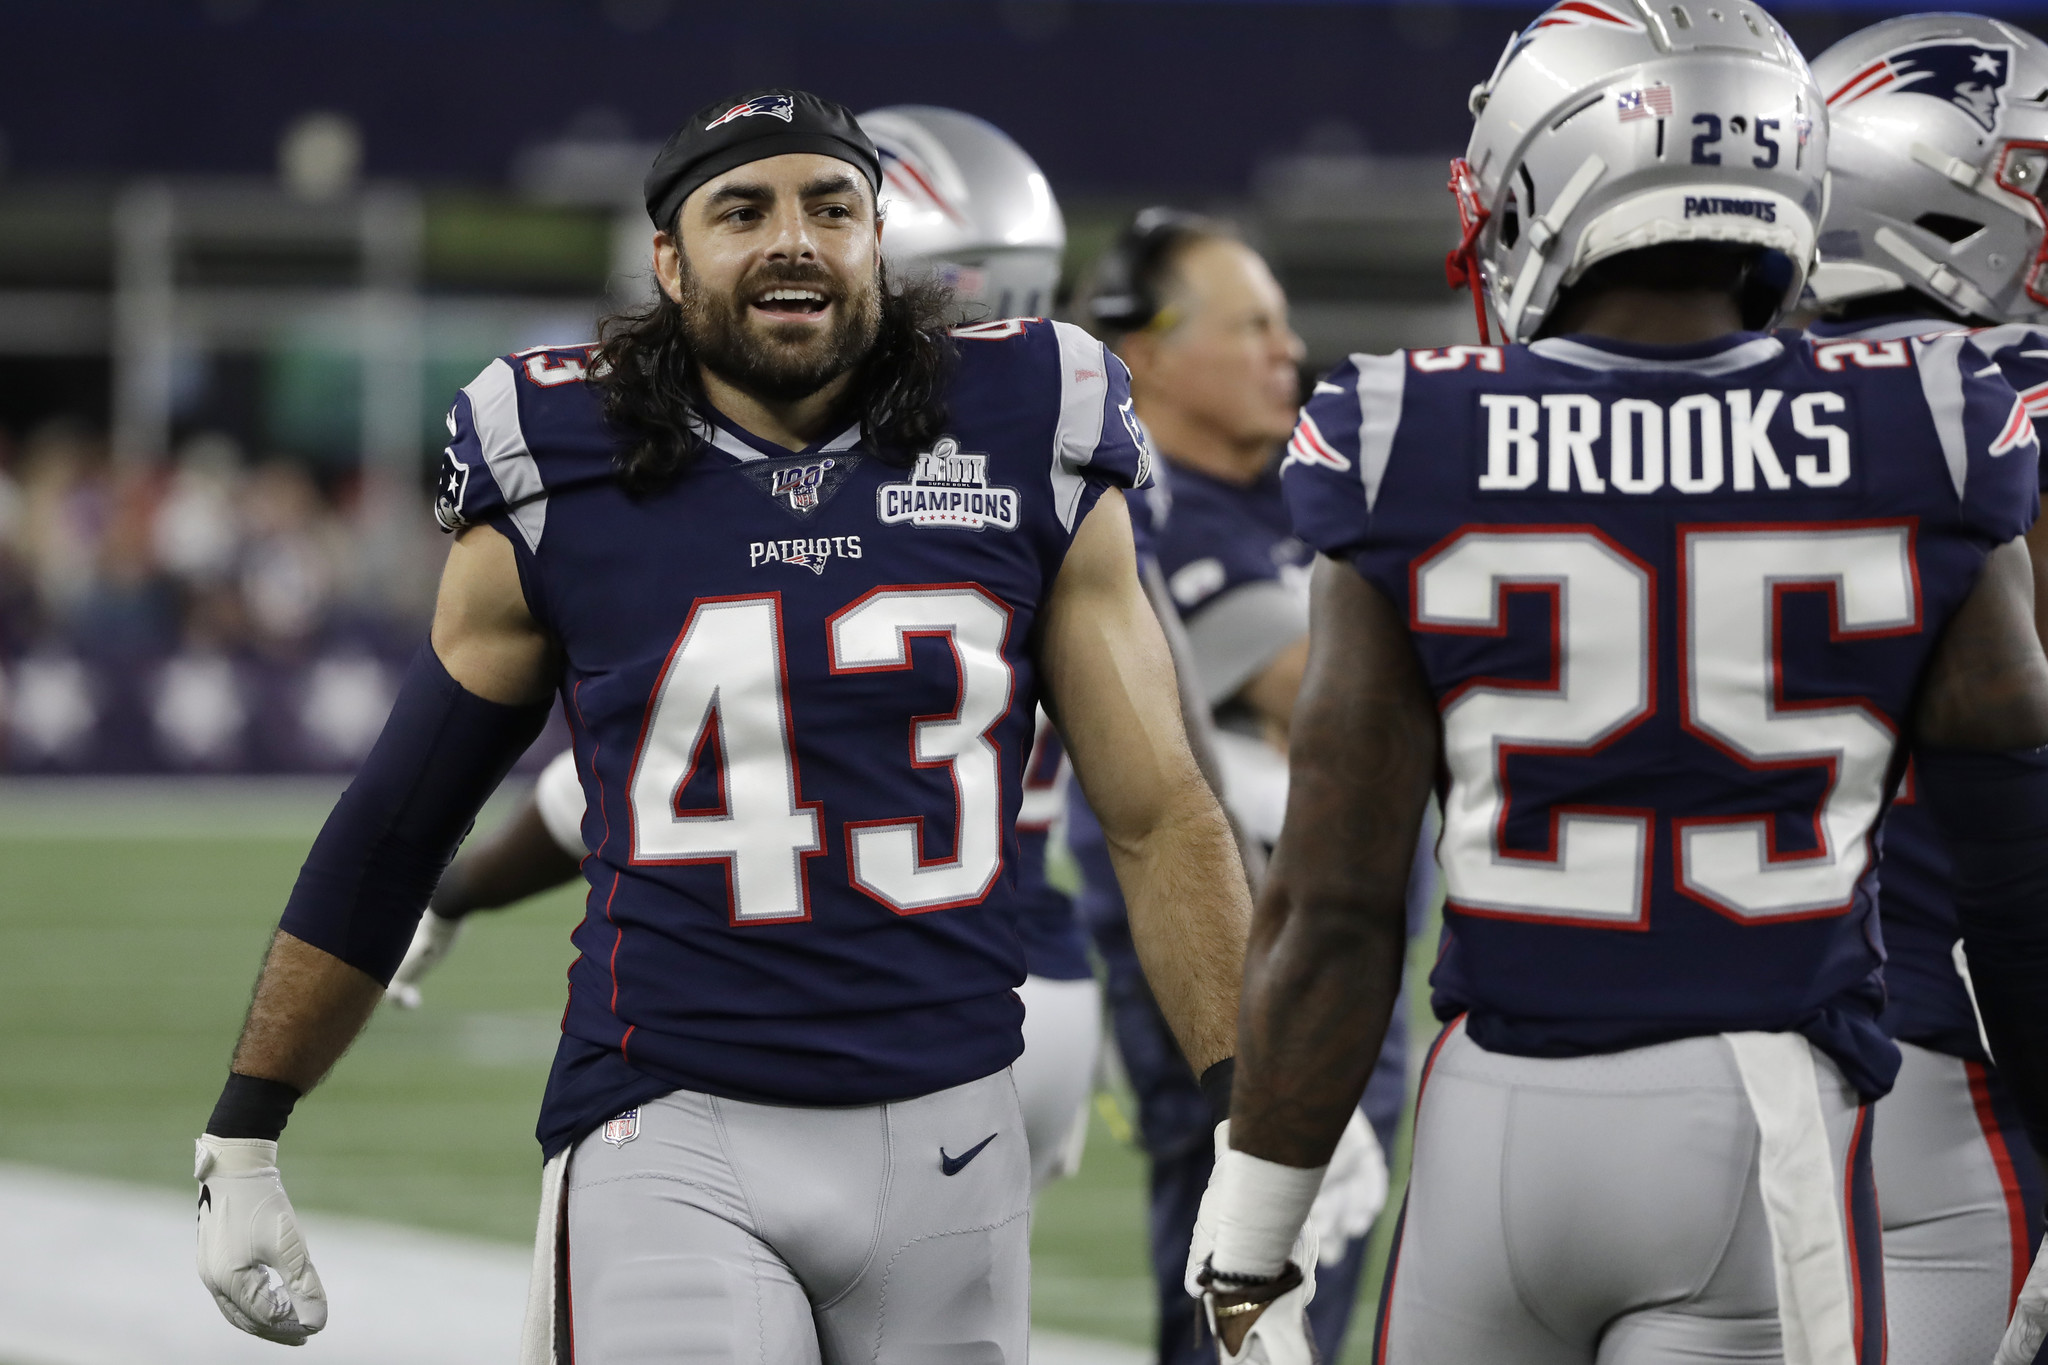 Nate Ebner provides early example of new 'Patriot Way' in Giants locker room